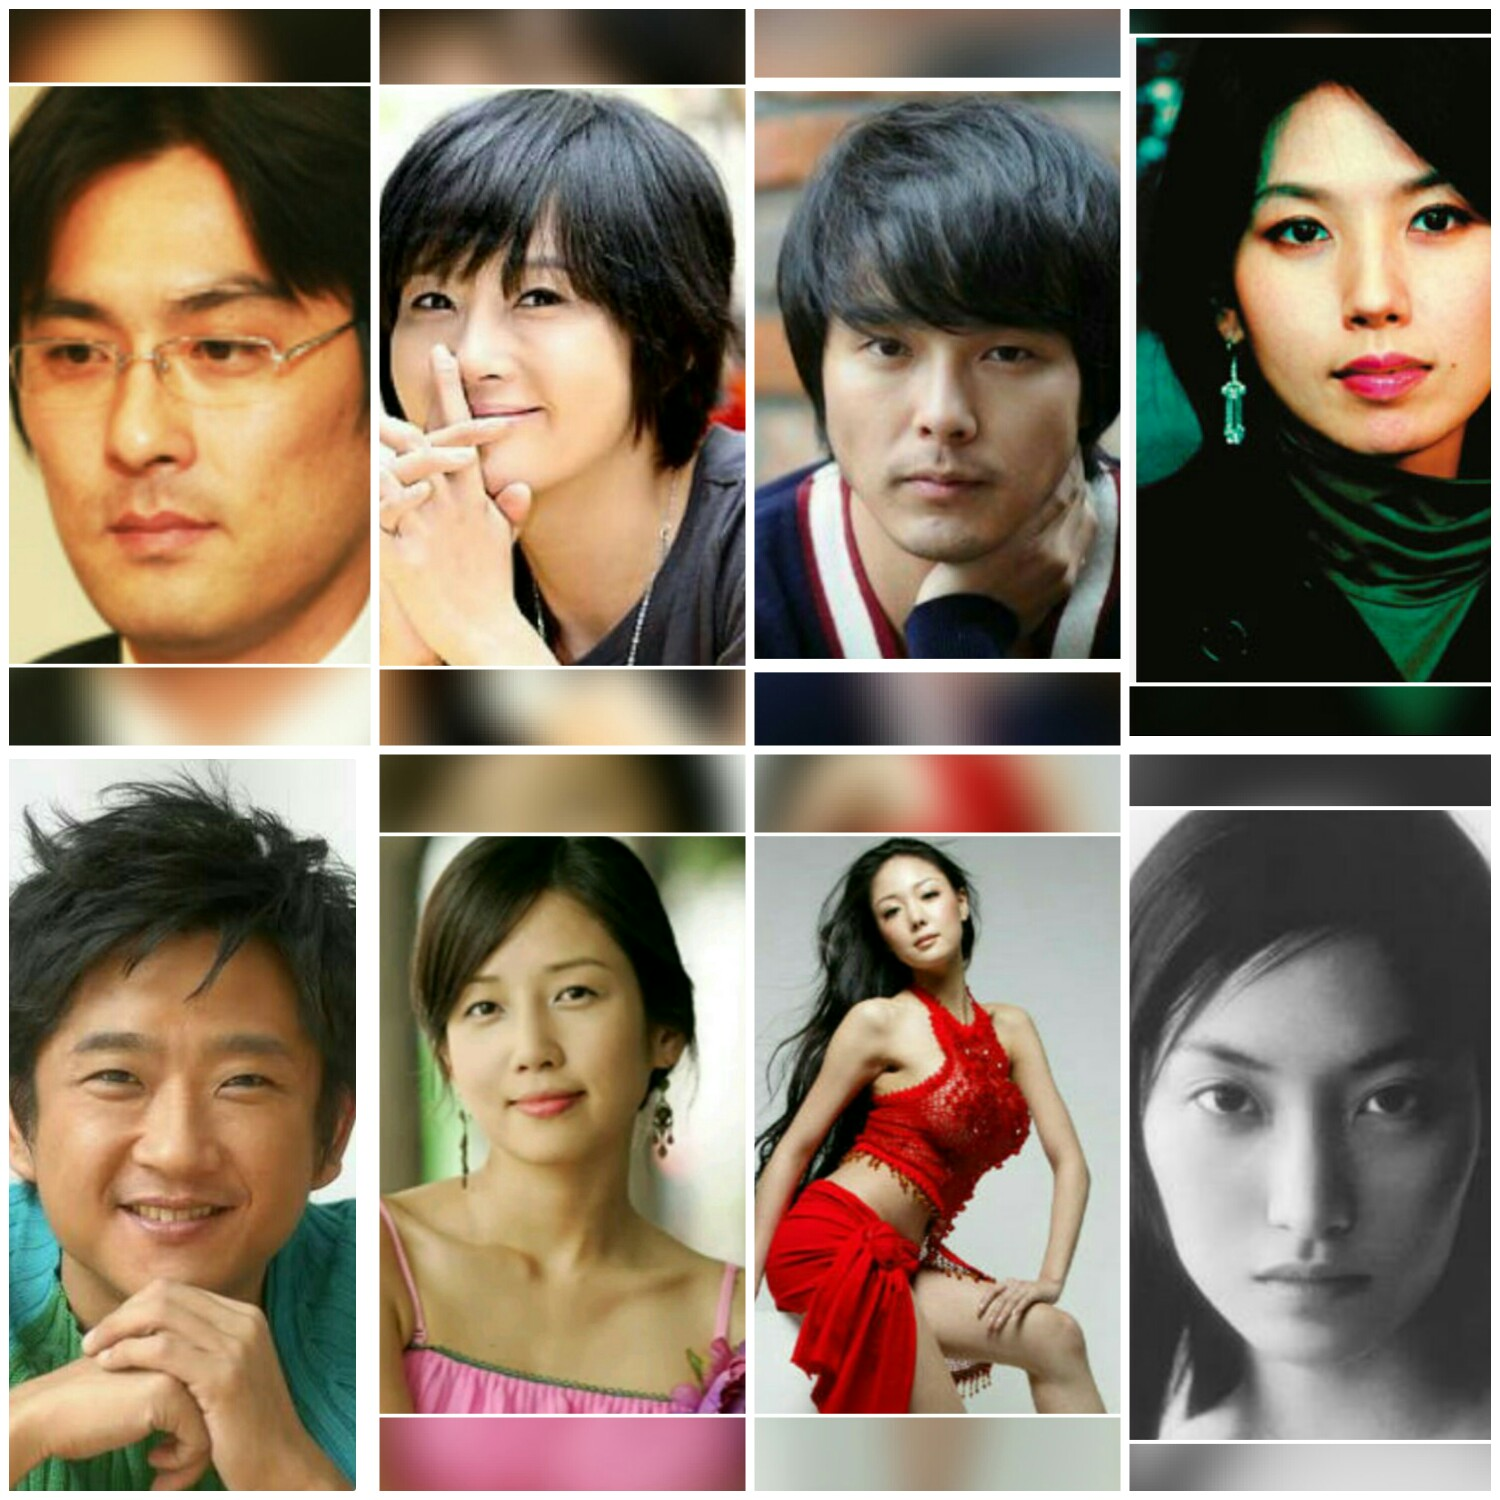 Korean Personalities Who Committed Suicide & their suicide